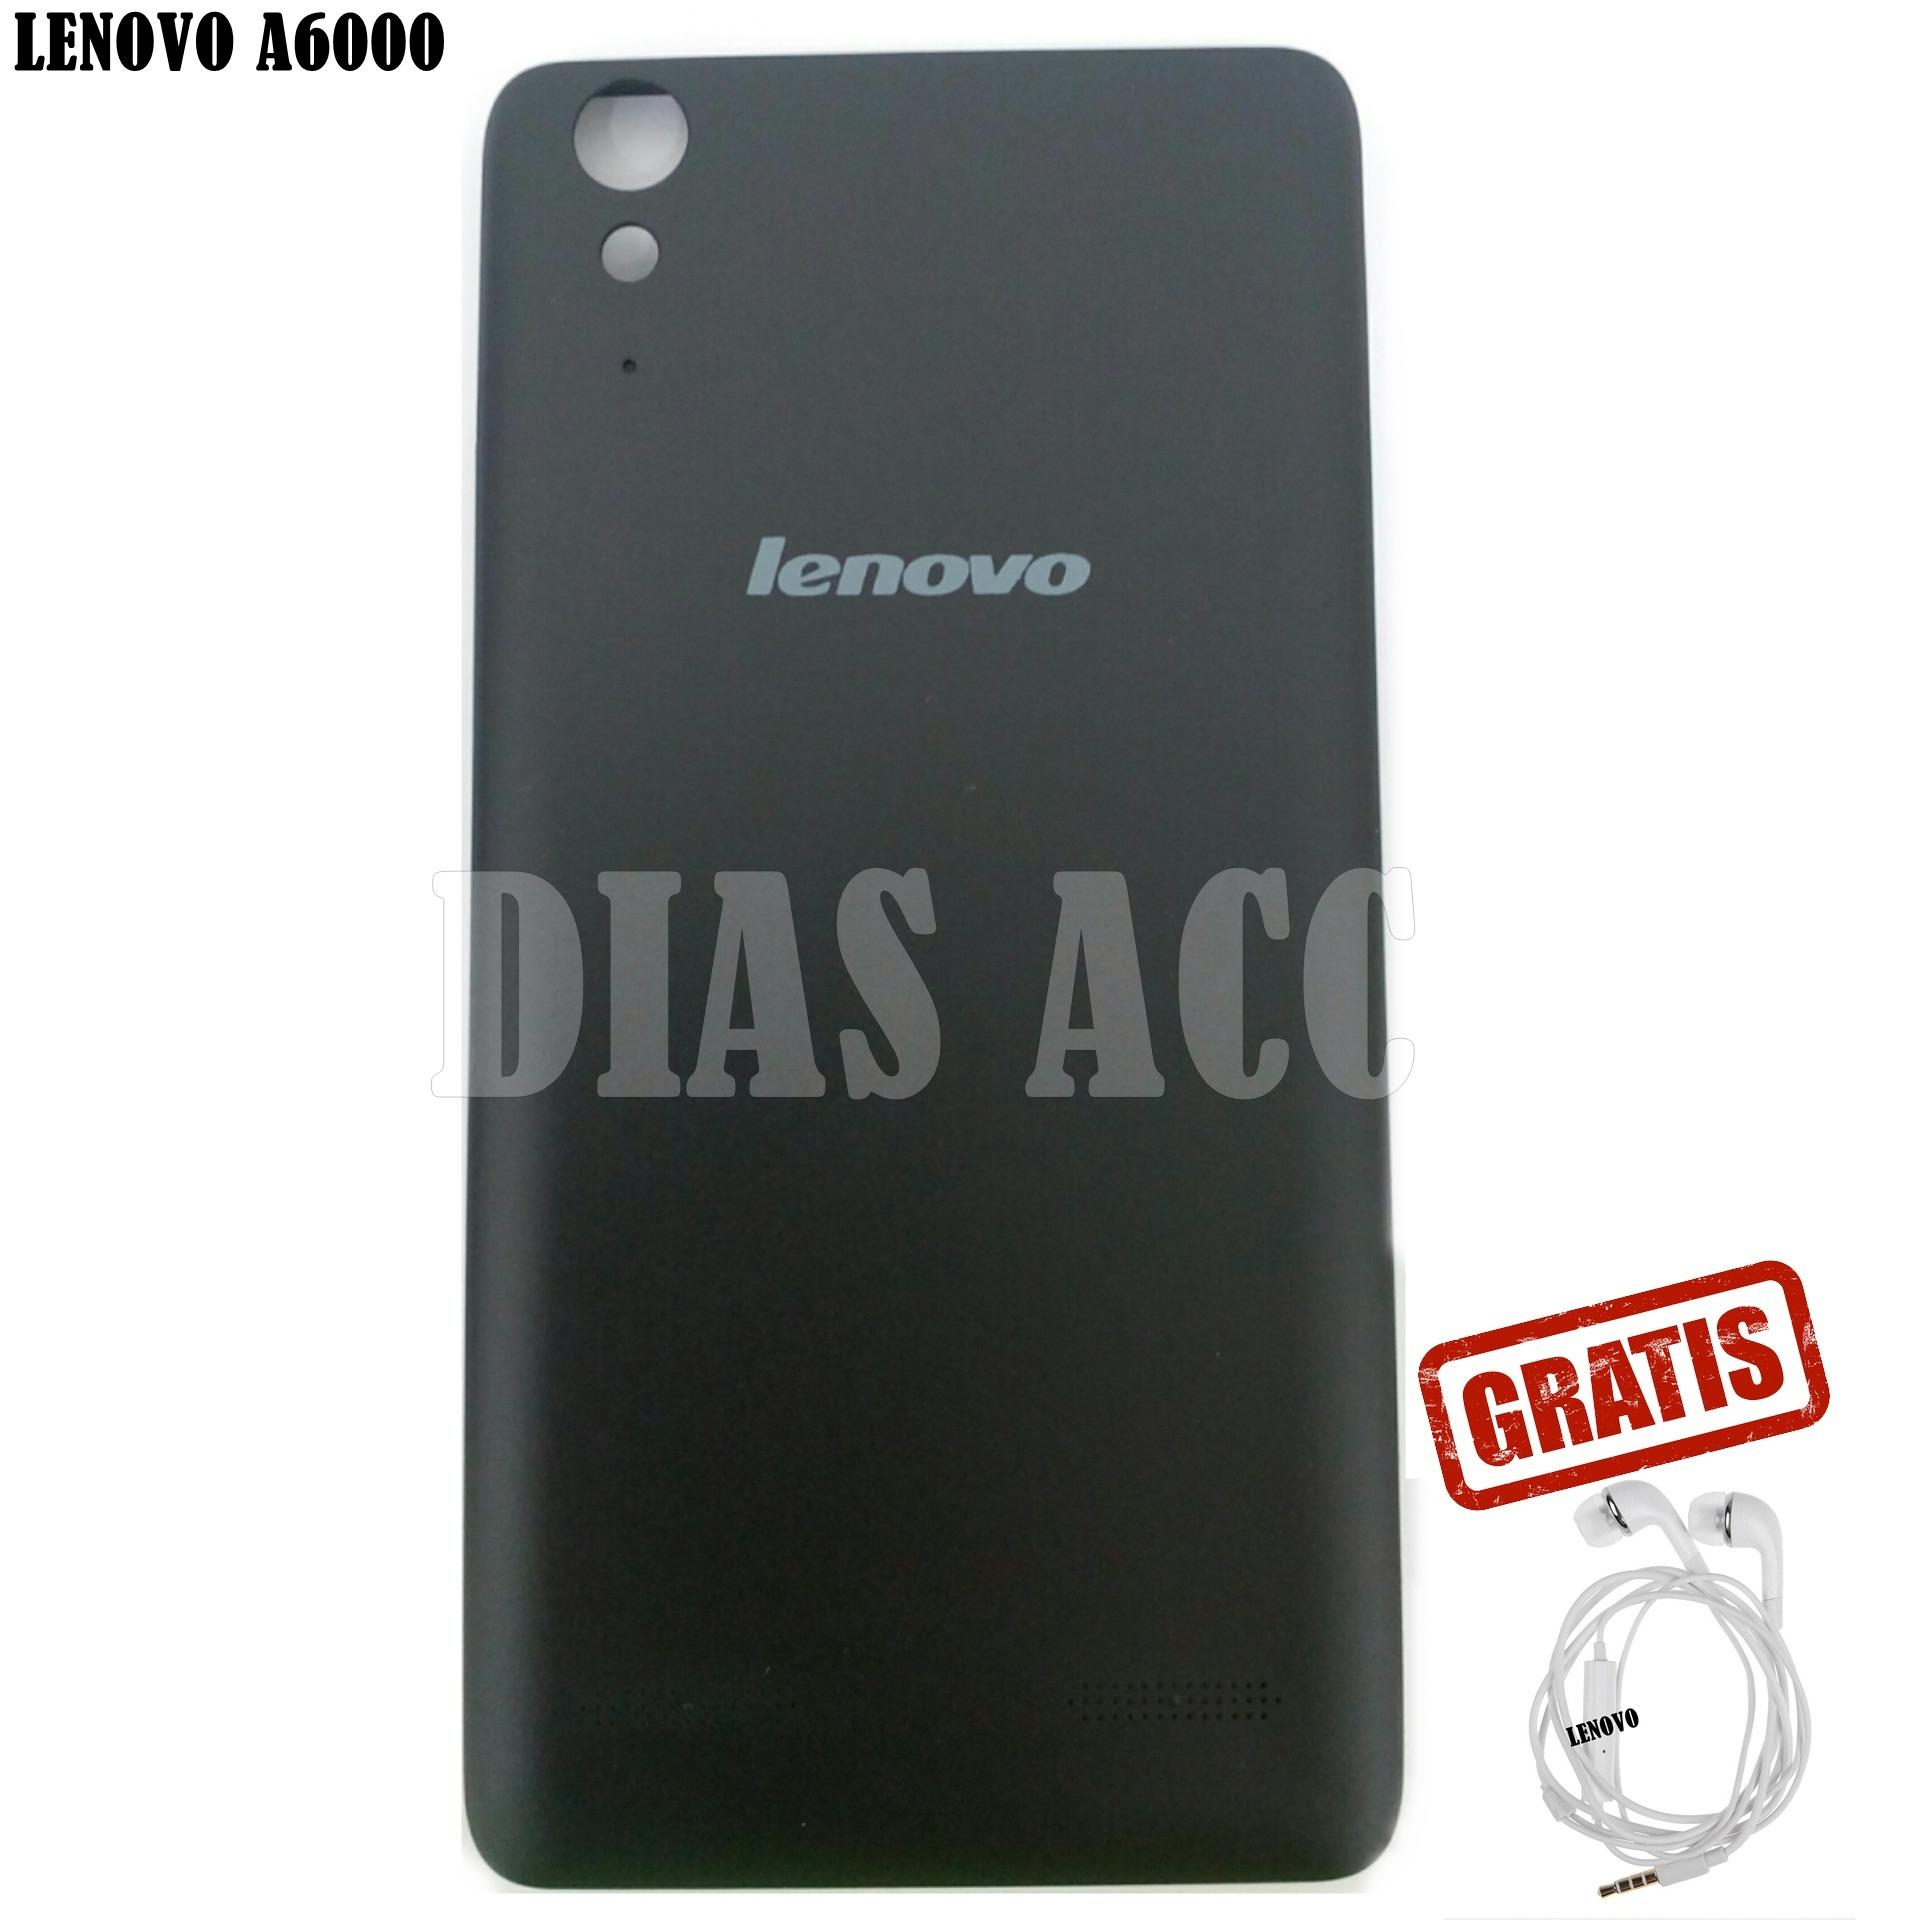 Backdoor / Tutup Belakang Lenovo A6000 Best seller + GRATIS Handsfree Lenovo Series